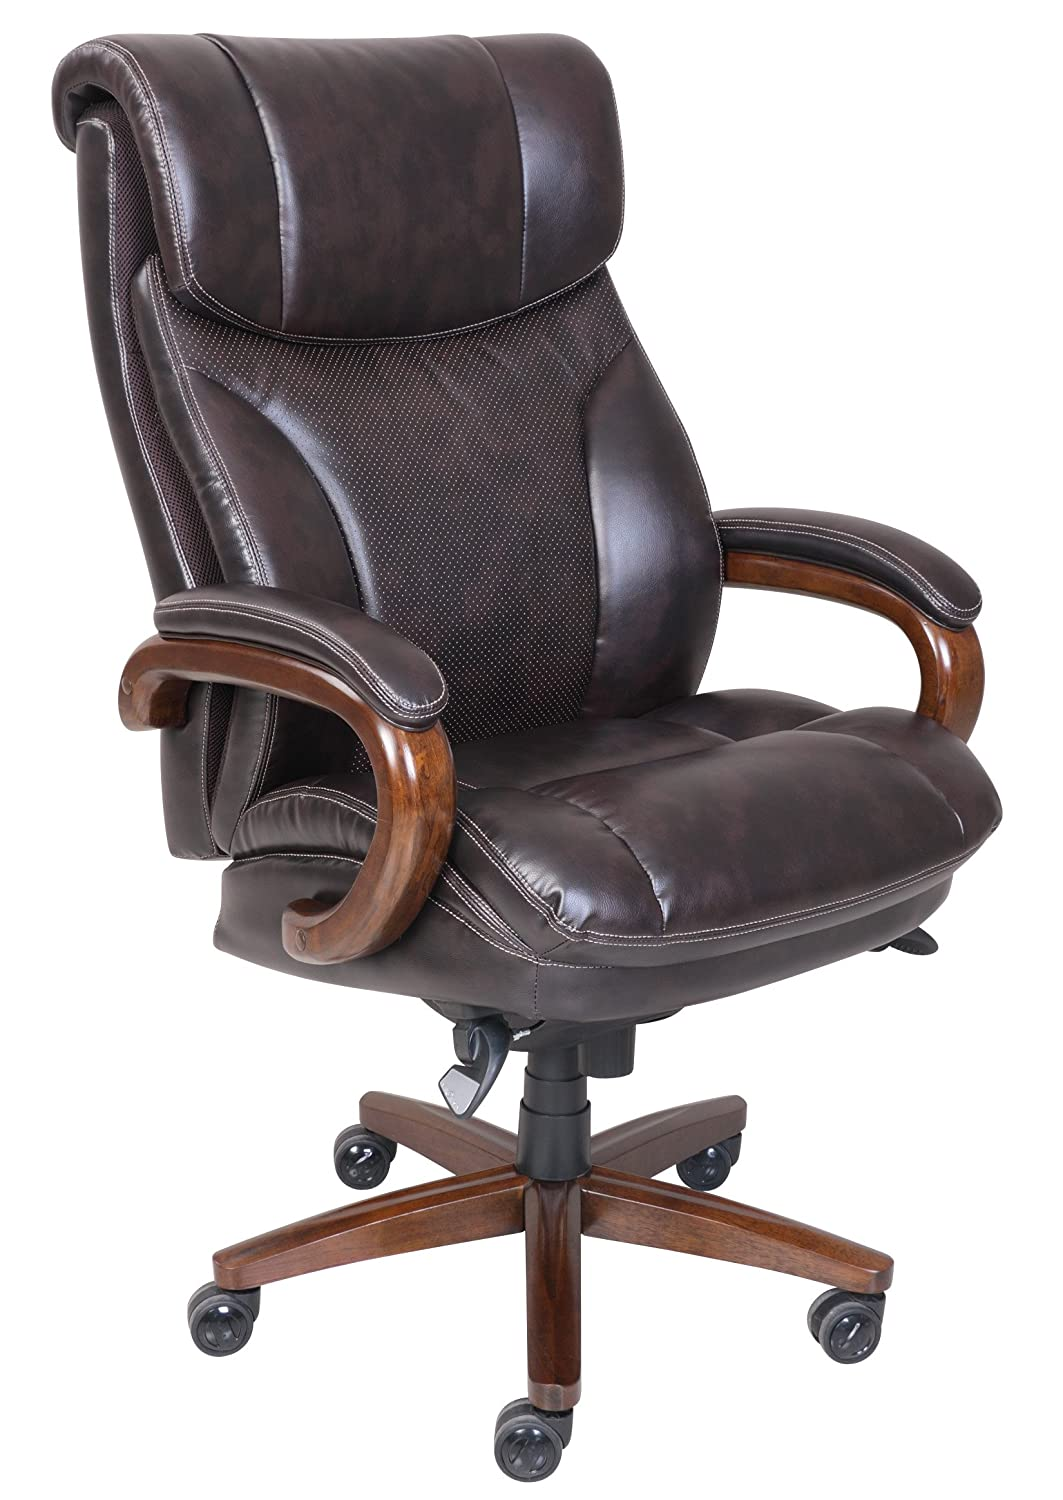 10 Most Comfortable La Z Boy Office Chairs Amp Alternatives